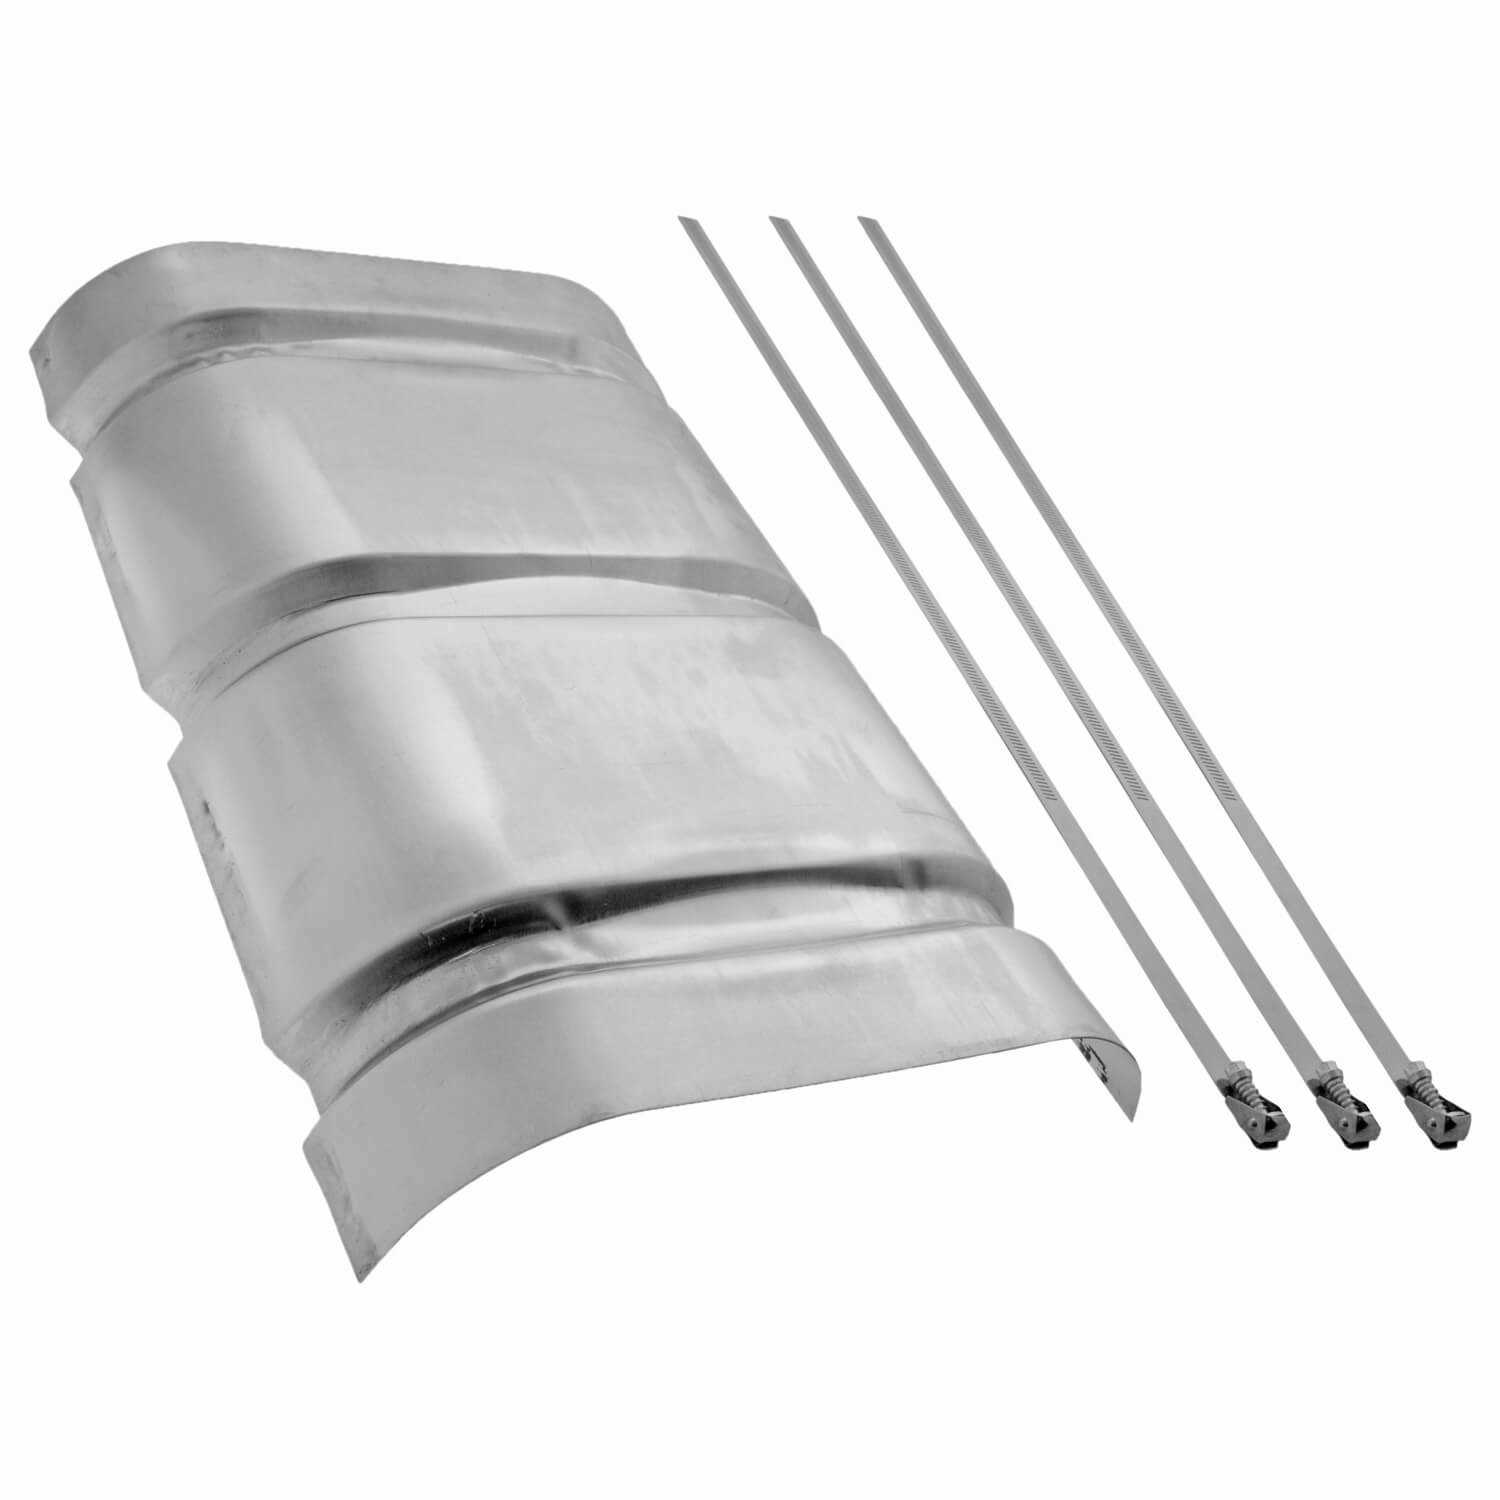 51017 Flowmaster Muffler Heat Shield